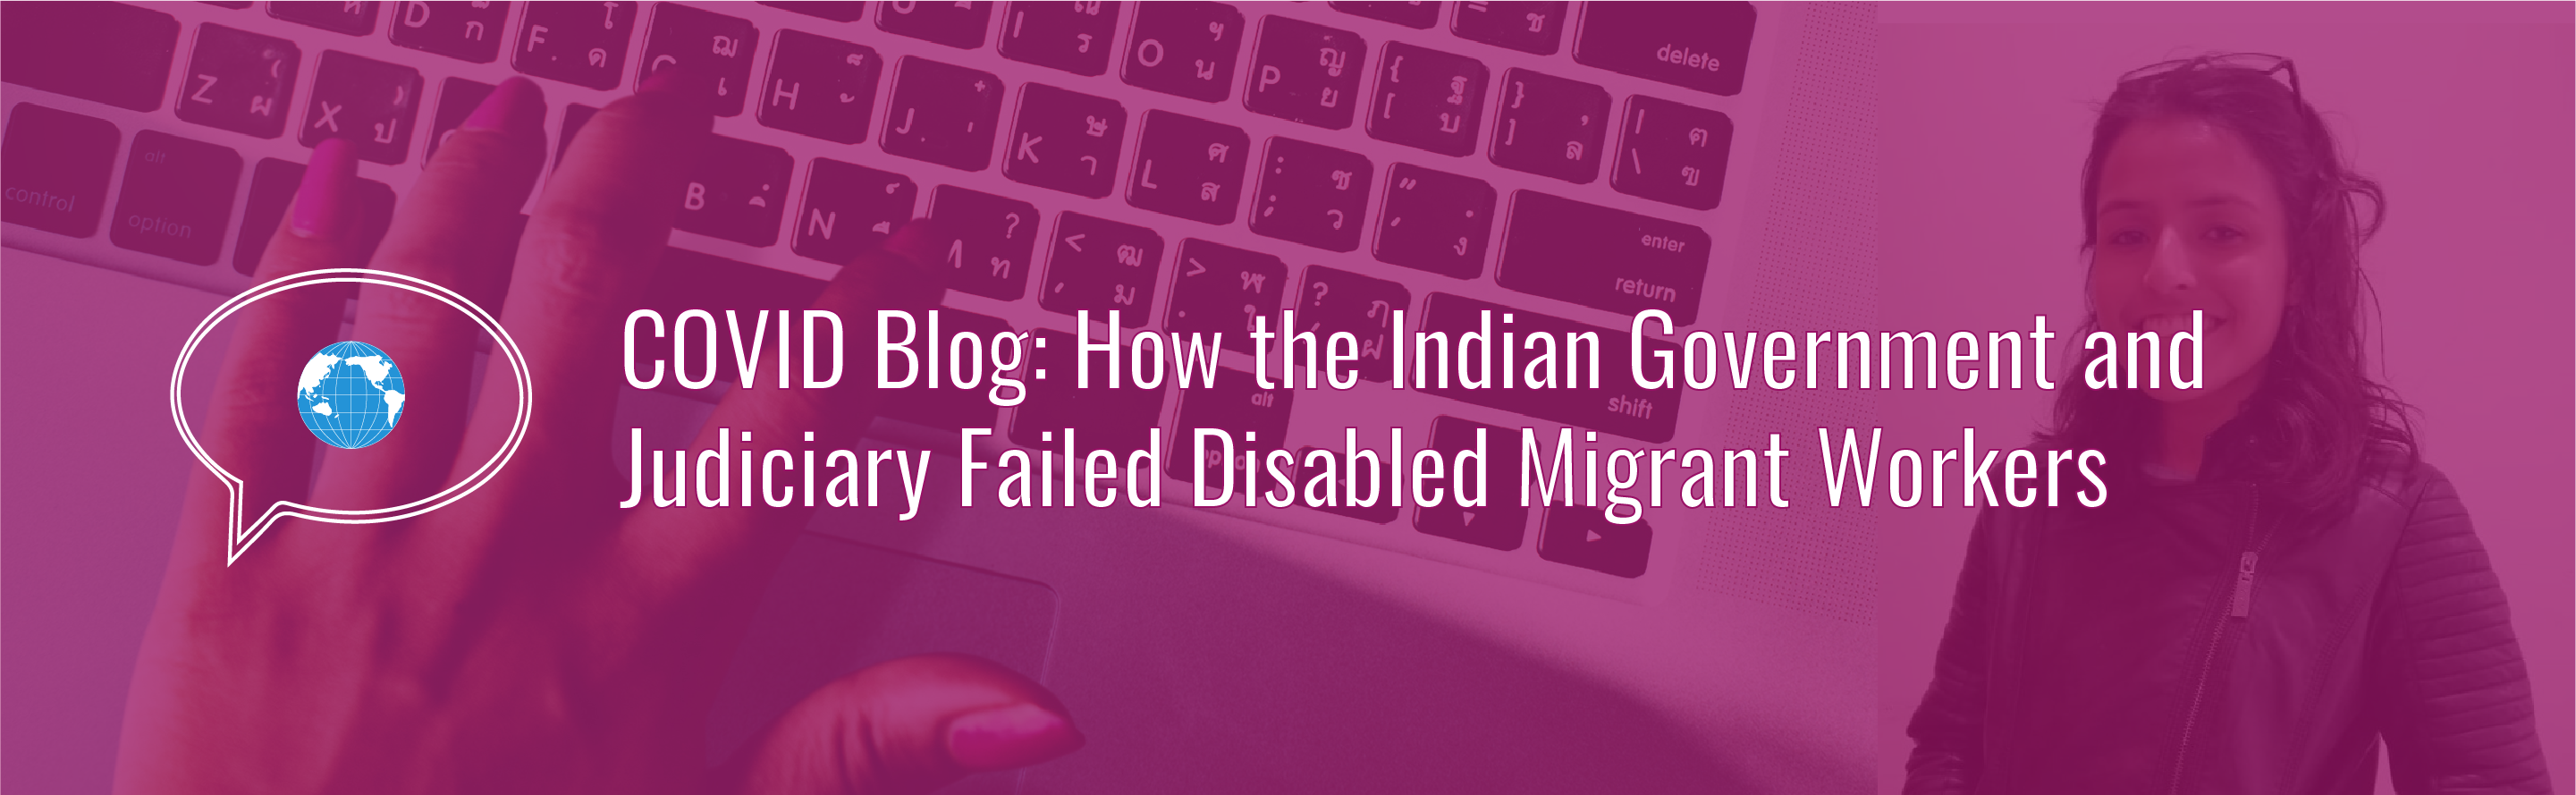 COVID blog banner_Disabled Migrant Workers